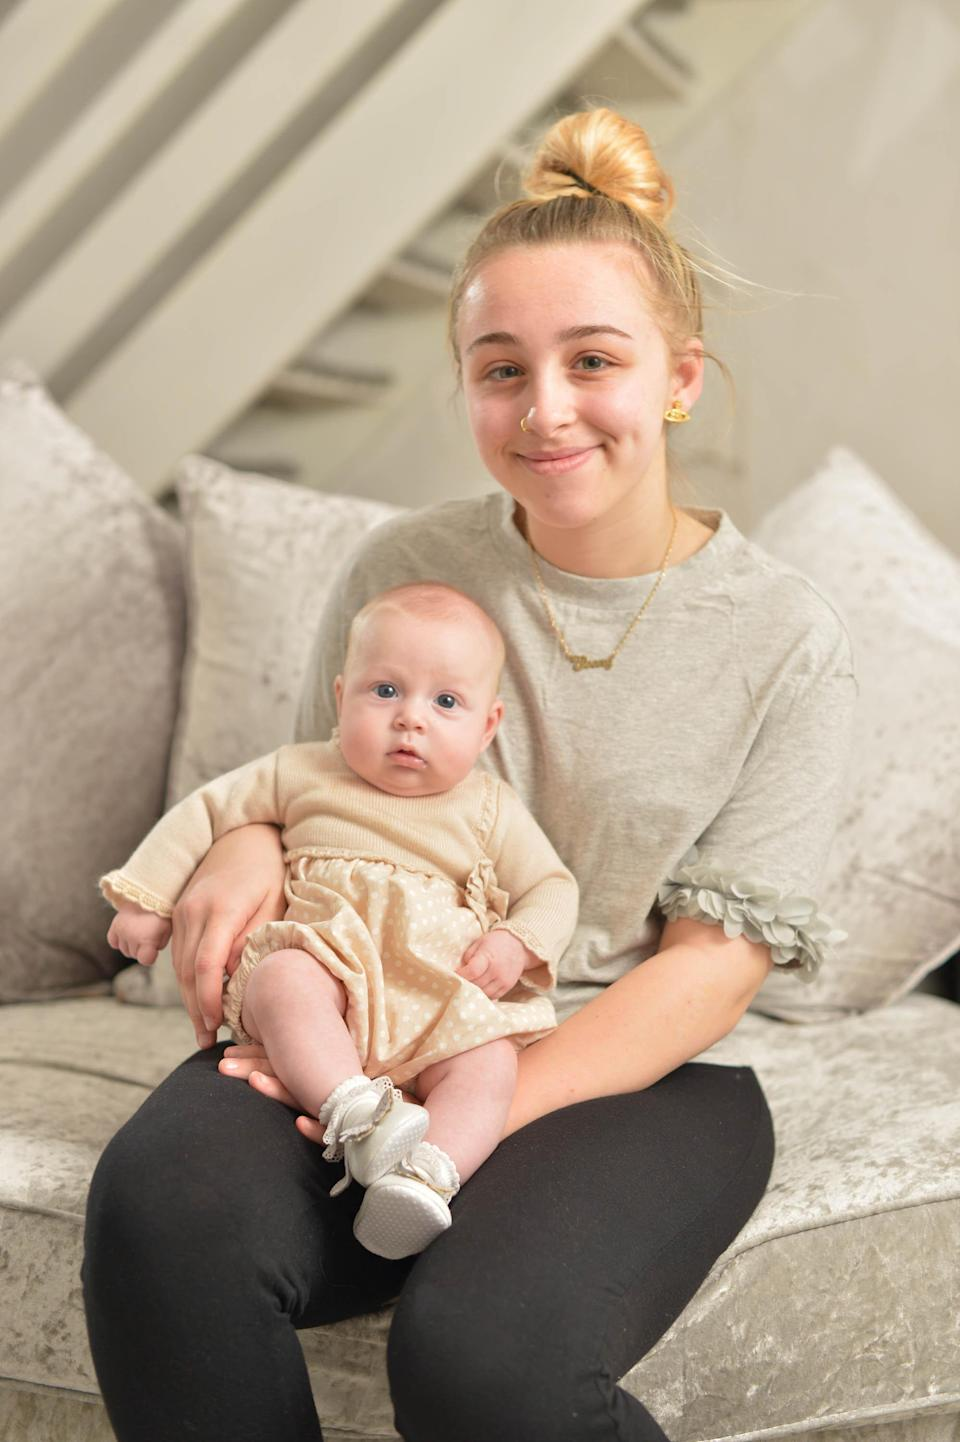 Ebony Stevenson photographed with her baby daughter, Elodie. (Photo: SWNS)